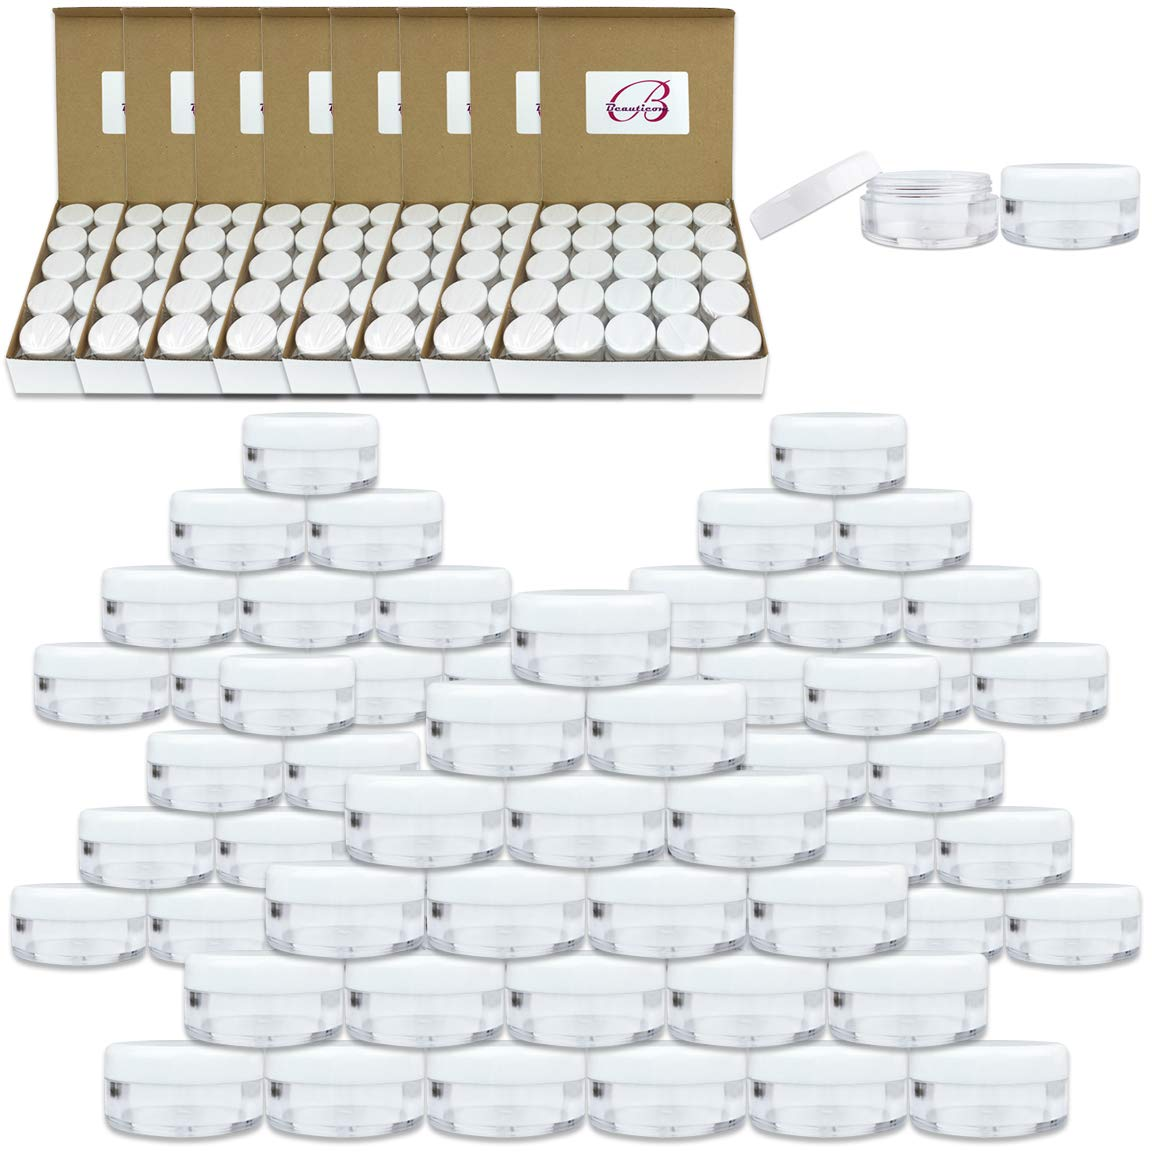 (1000 Pcs) Beauticom 5G/5ML Round Clear Jars with White Lids for Scrubs, Oils, Salves, Creams, Lotions - BPA Free